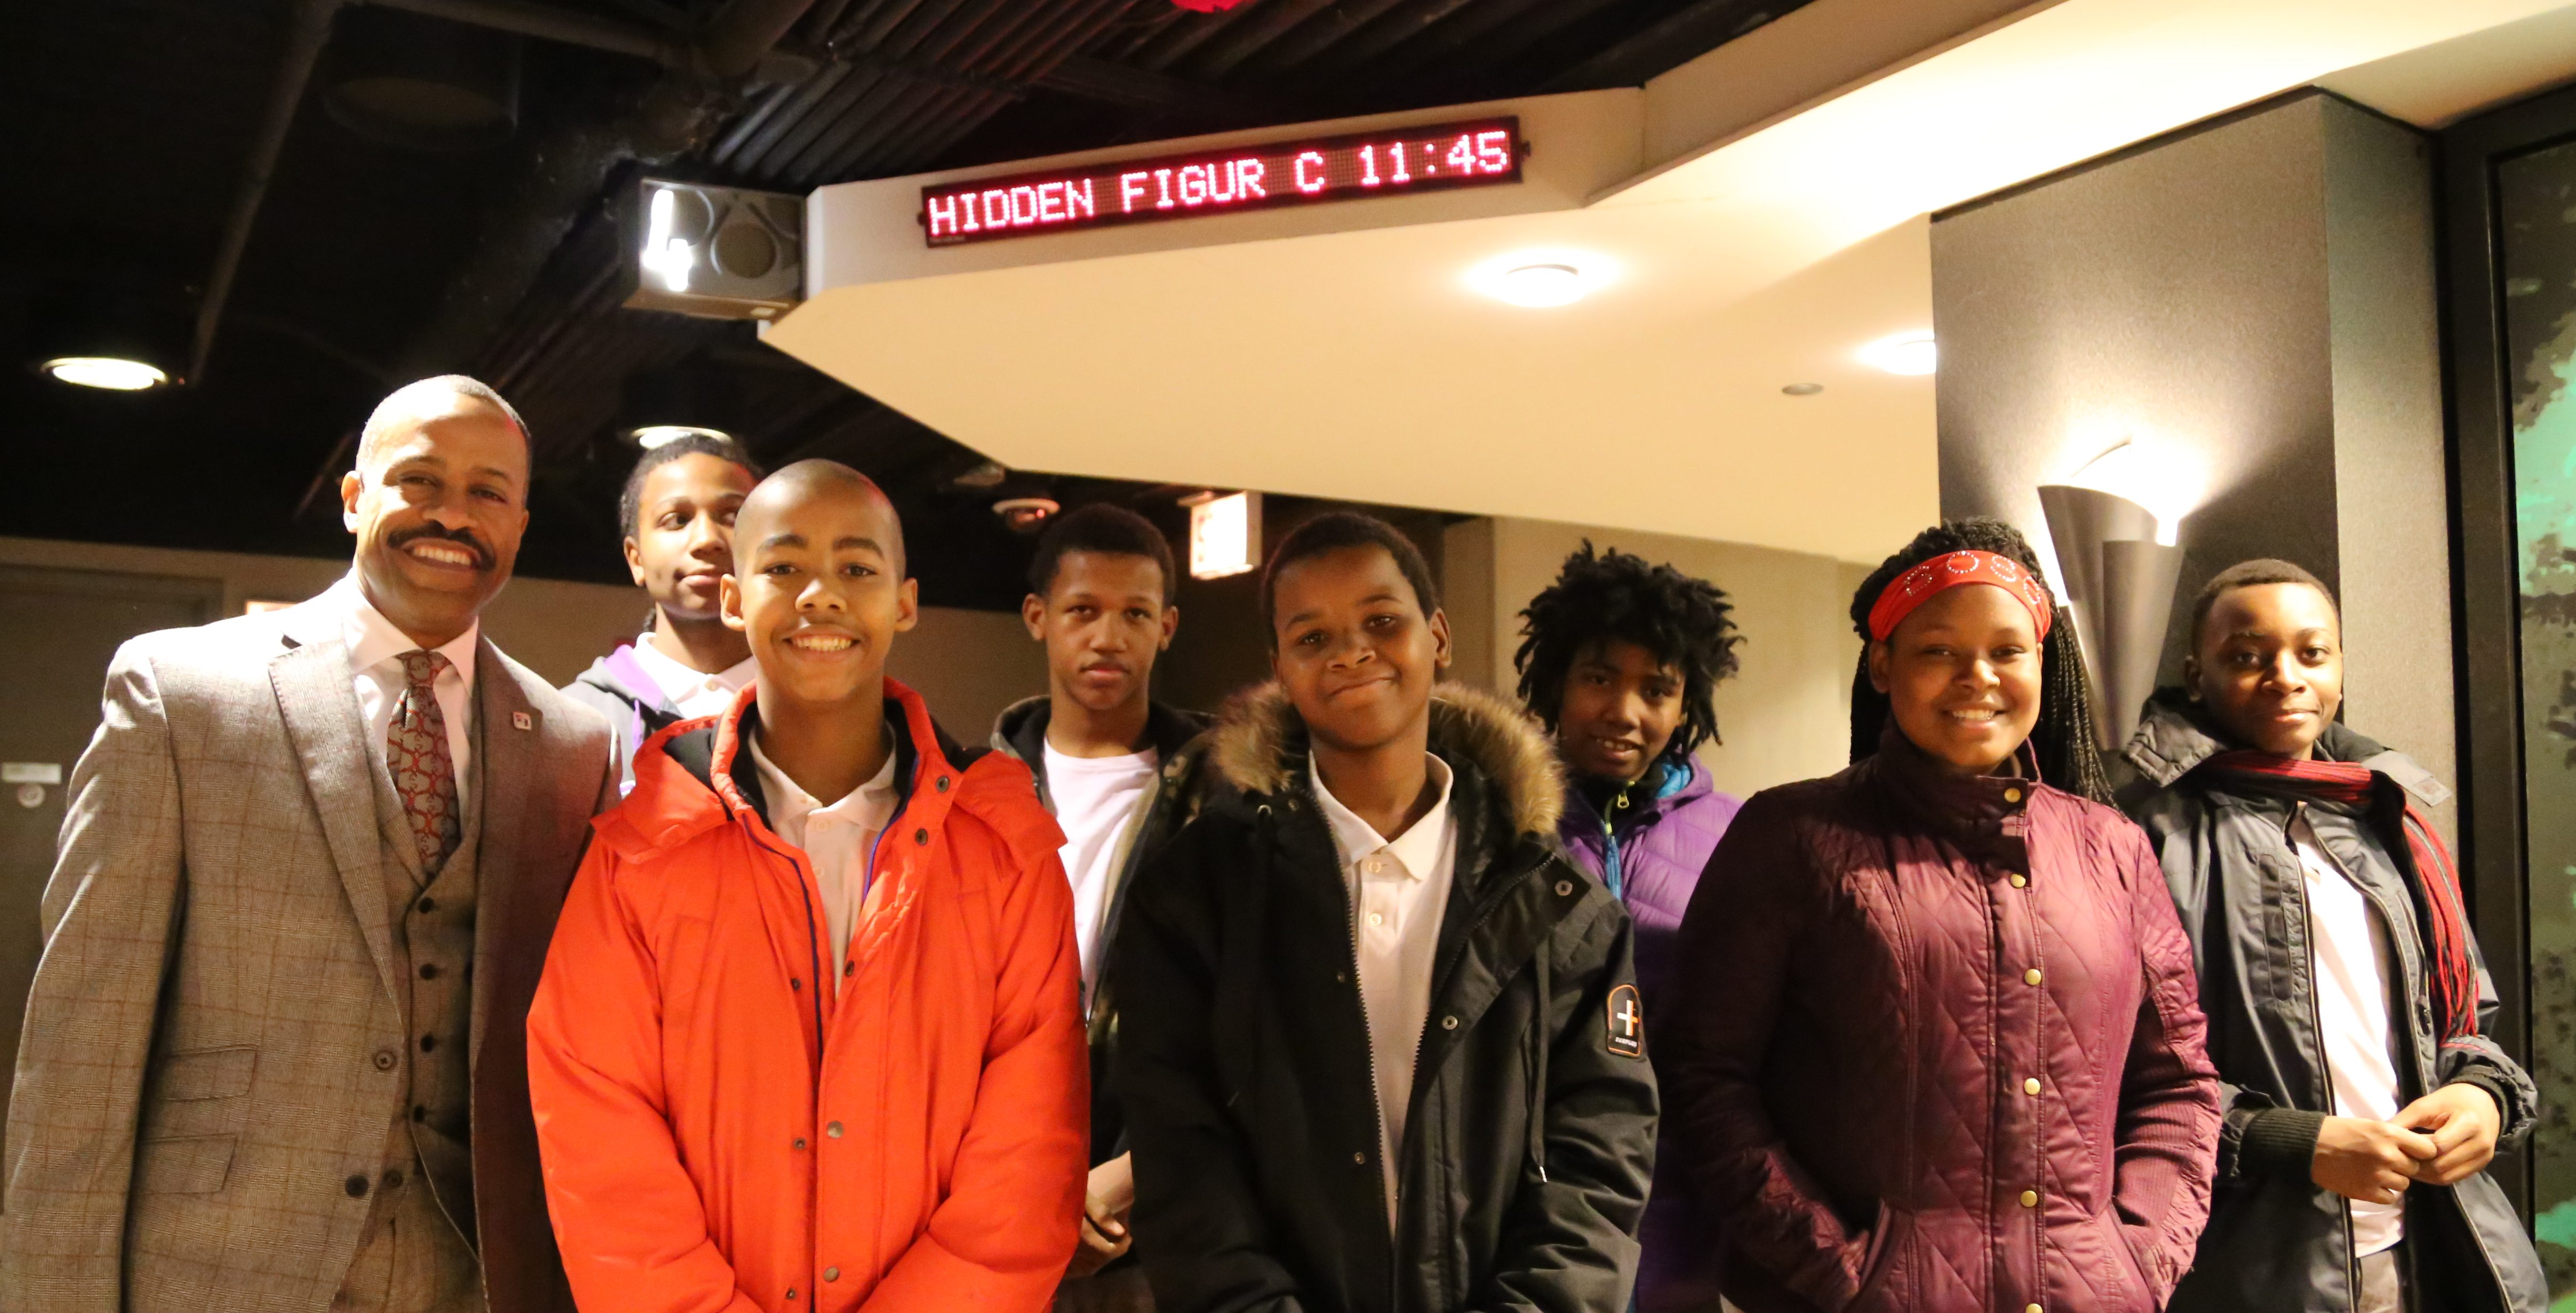 Image: Fifth Third Bank's Market President Eric S. Smith stands with a group of seven youth outside the theater, before the screening.